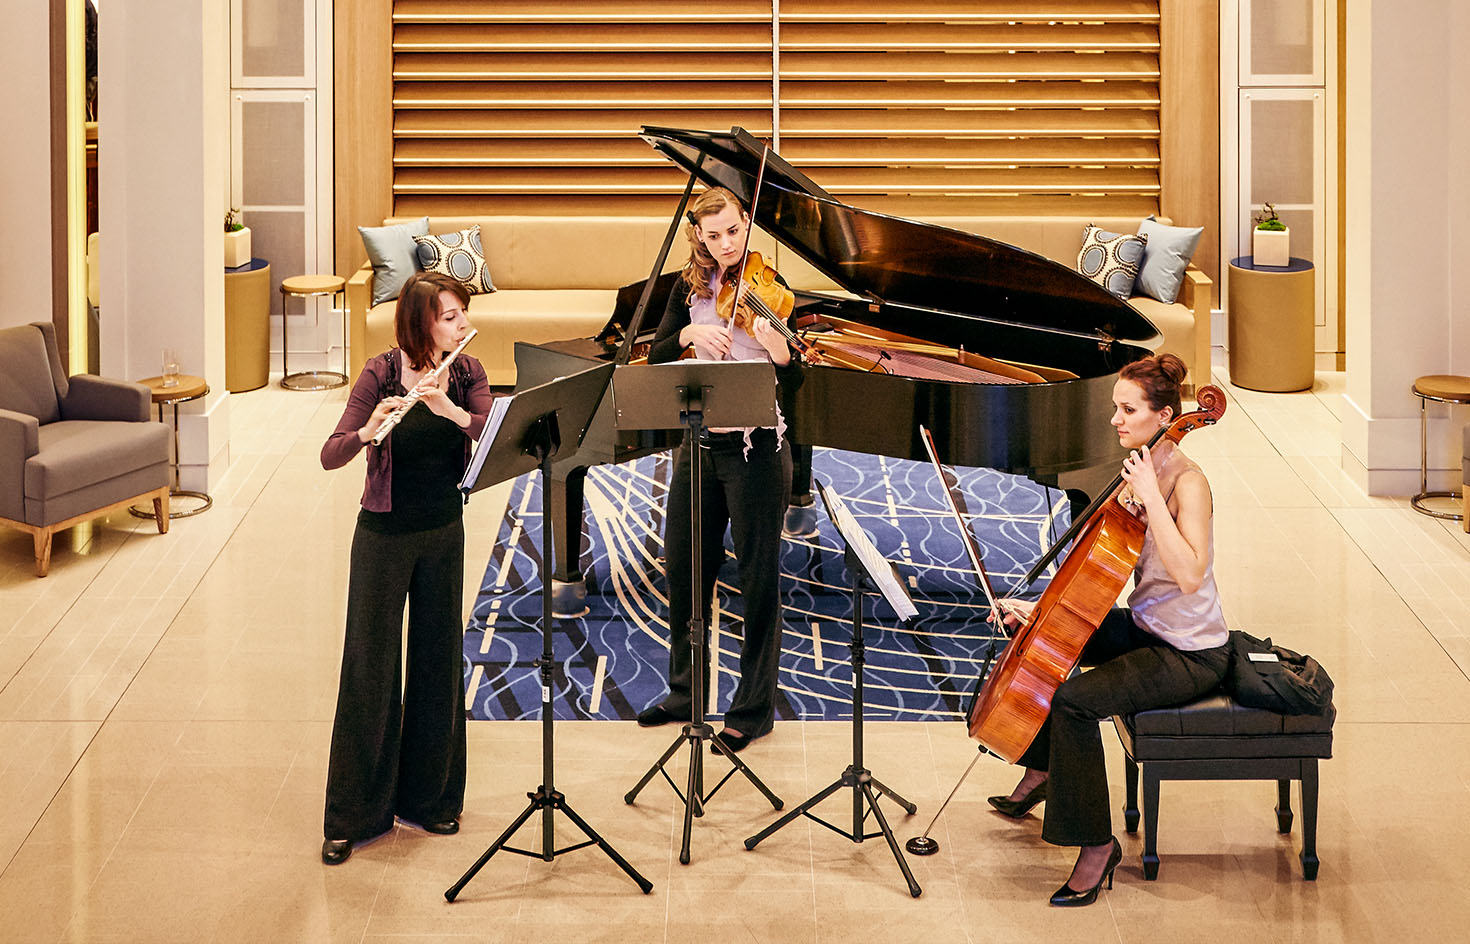 Three women performing music in front of a piano